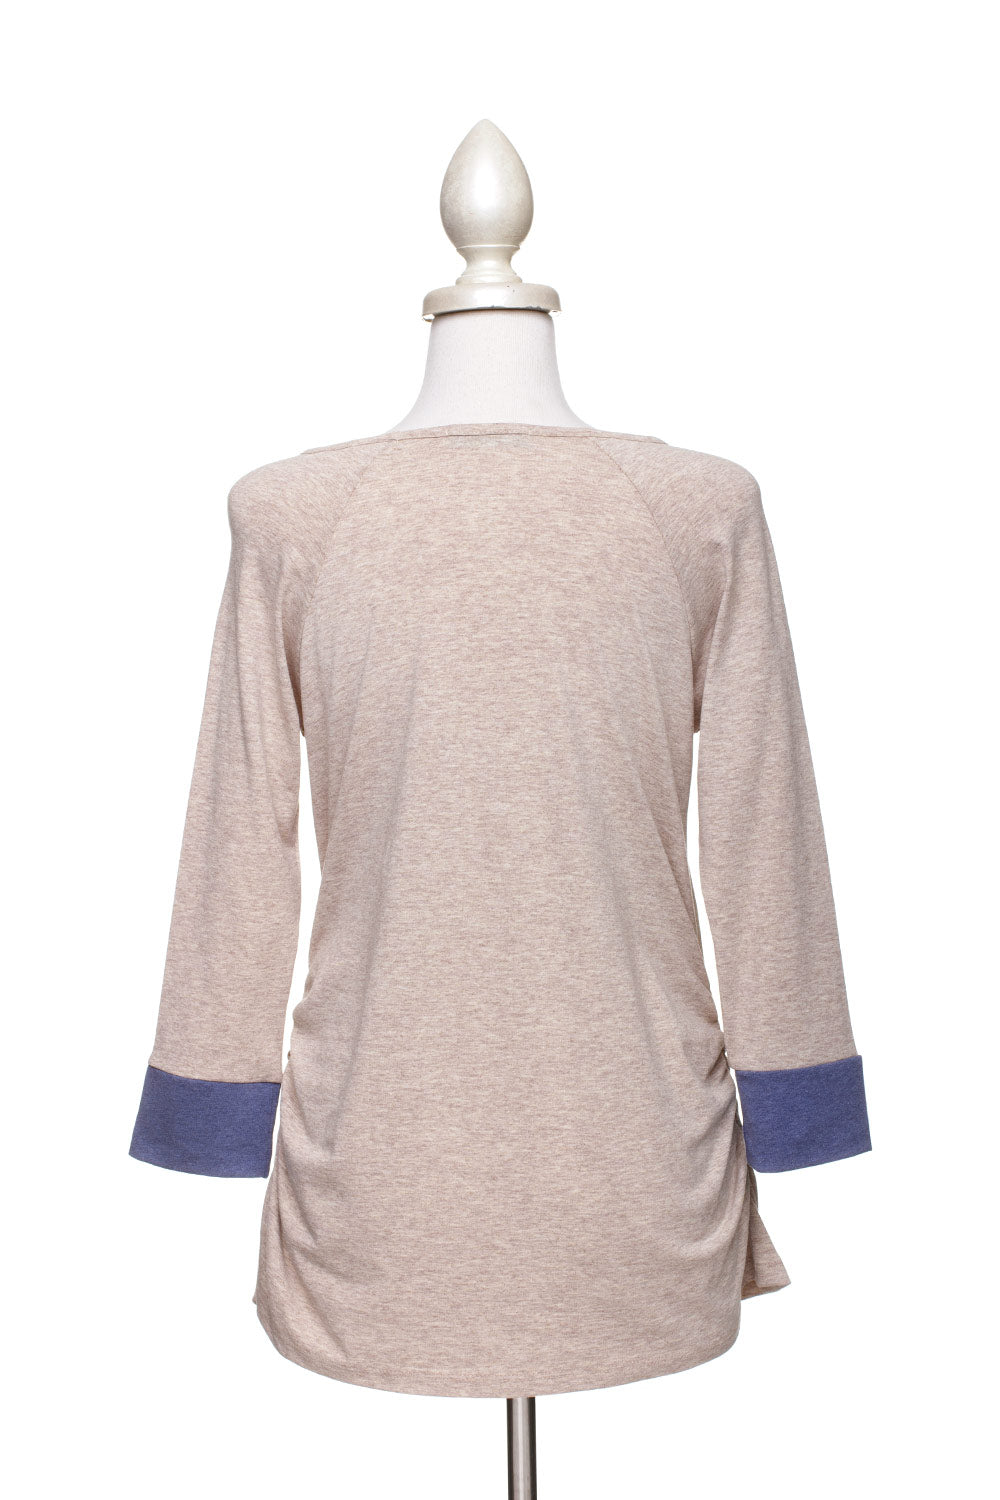 Type 2 Soothing Top in Taupe